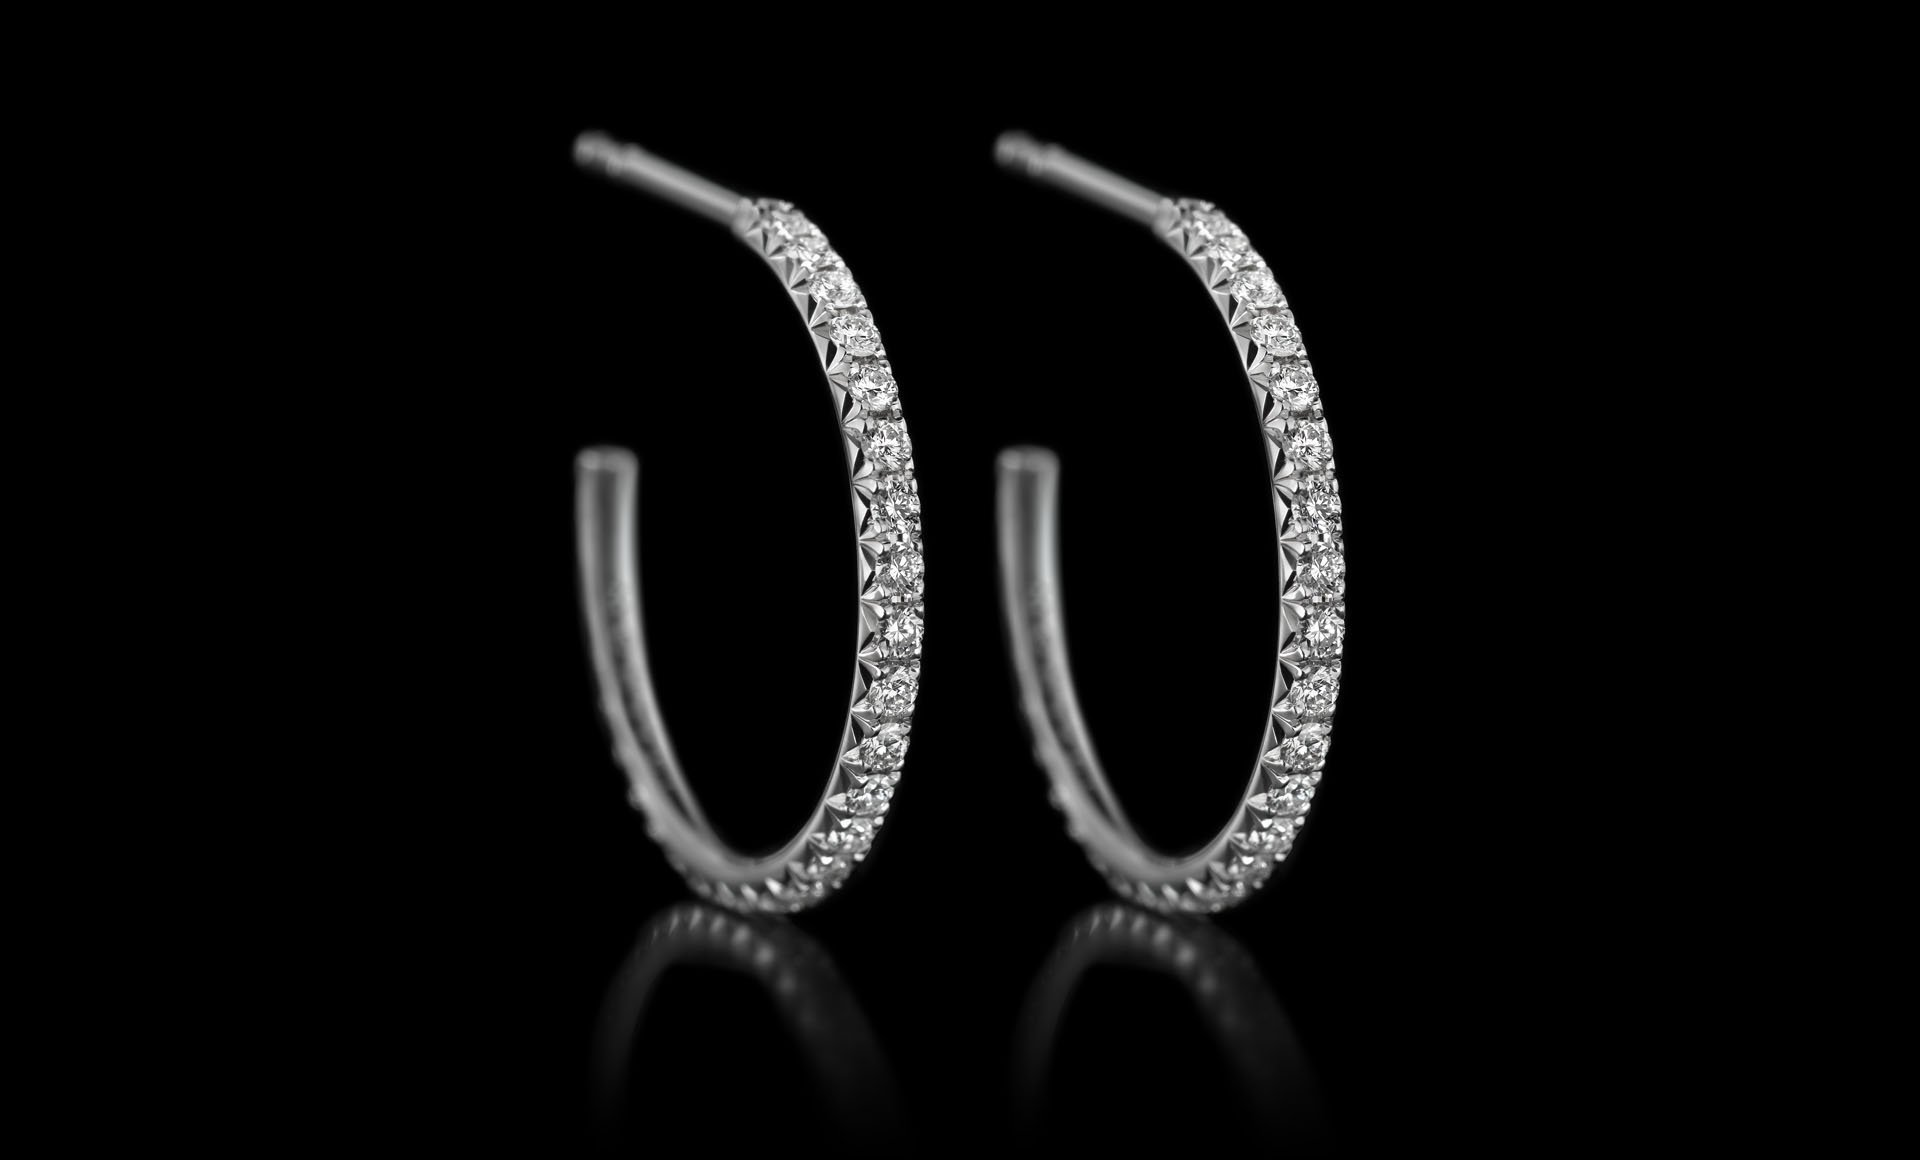 Montluc - Halo No 2. Diamond hoop earrings, set with a continuous line of perfectly selected, brilliant cut diamonds